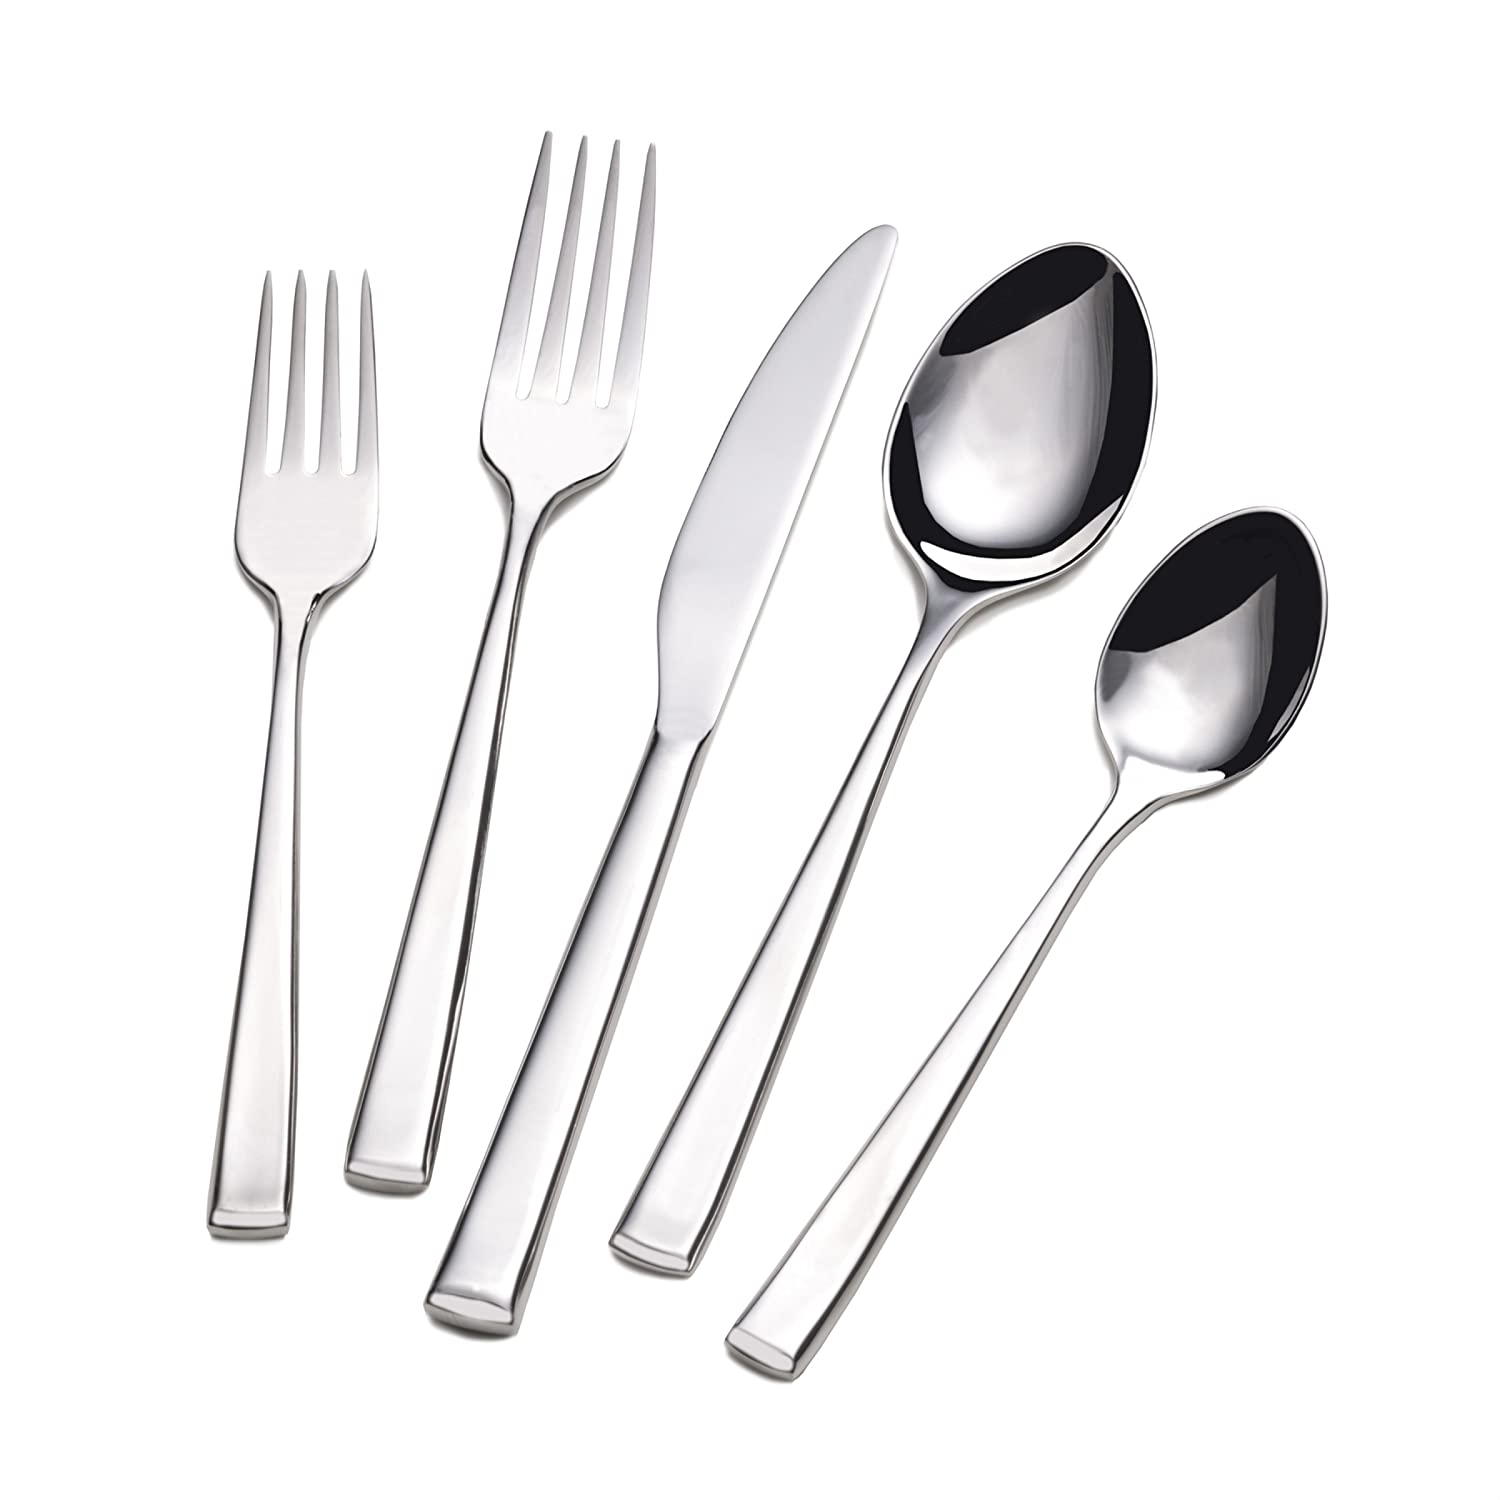 Towle Living Dream 20-Piece Flatware Set Syratech Domestic 5099488